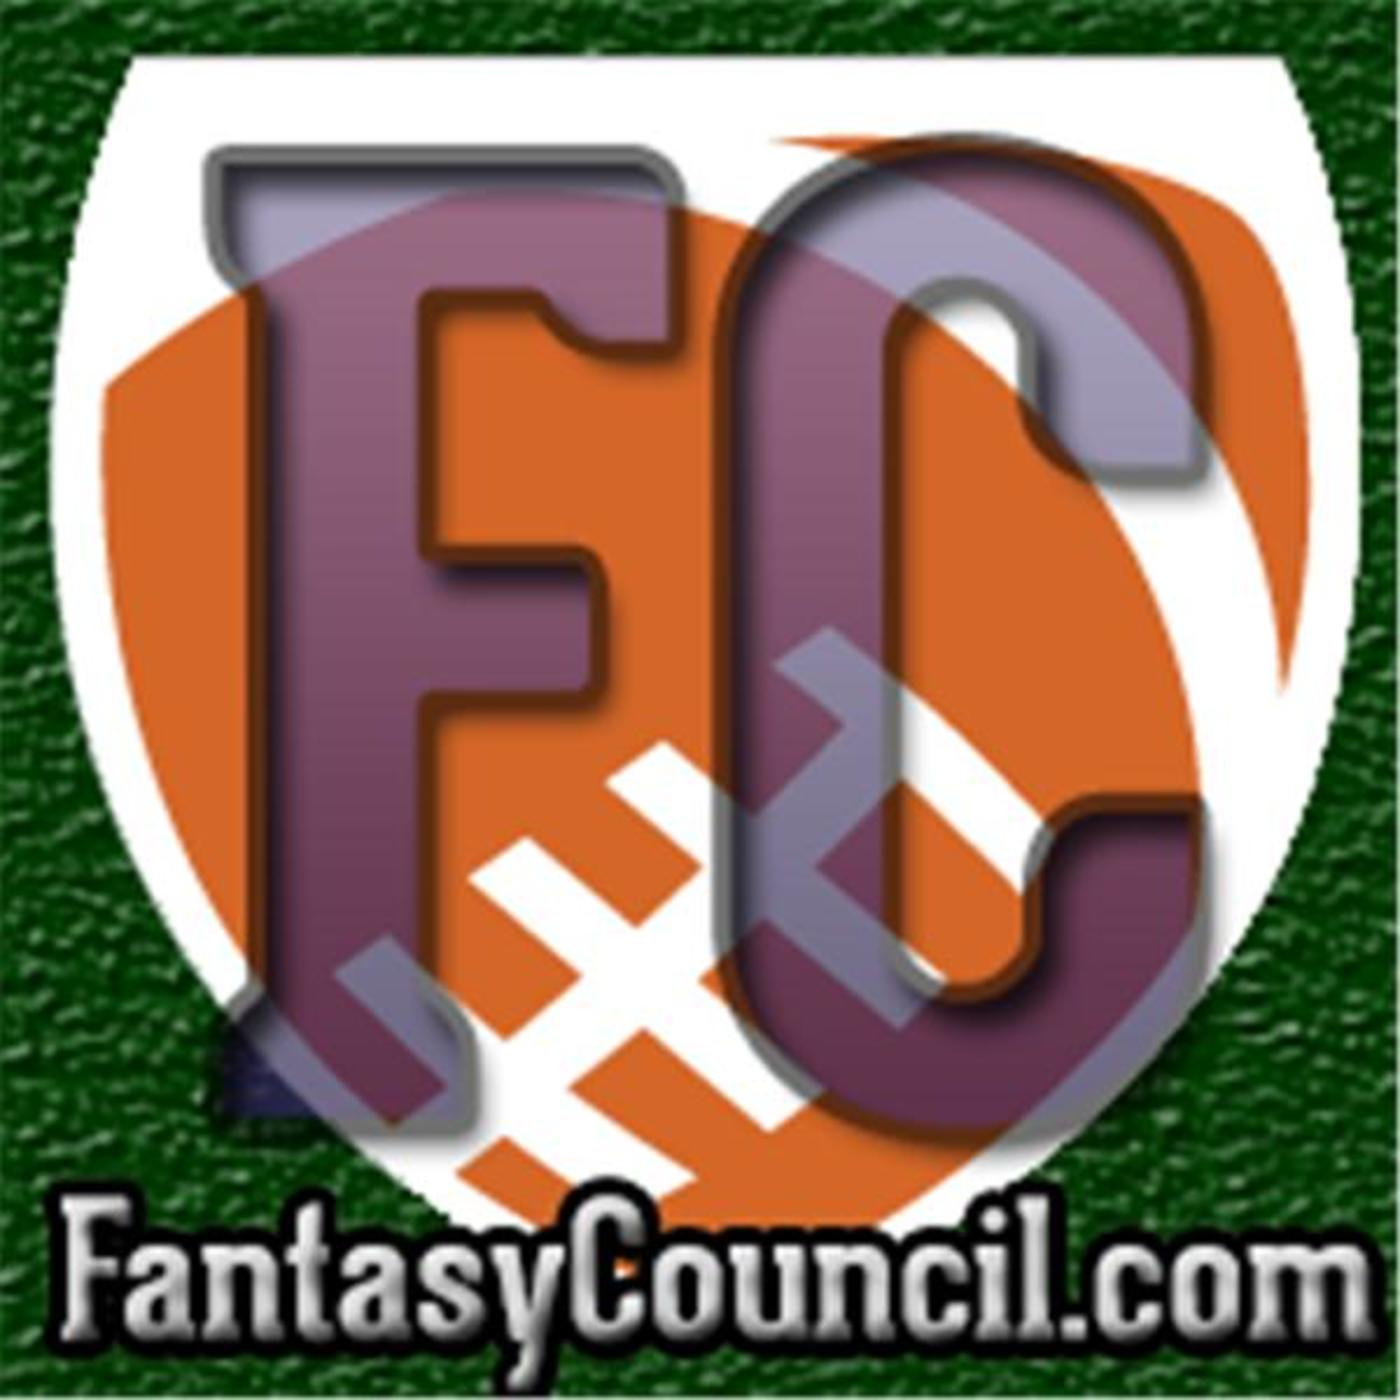 FantasyCouncil.com Podcast